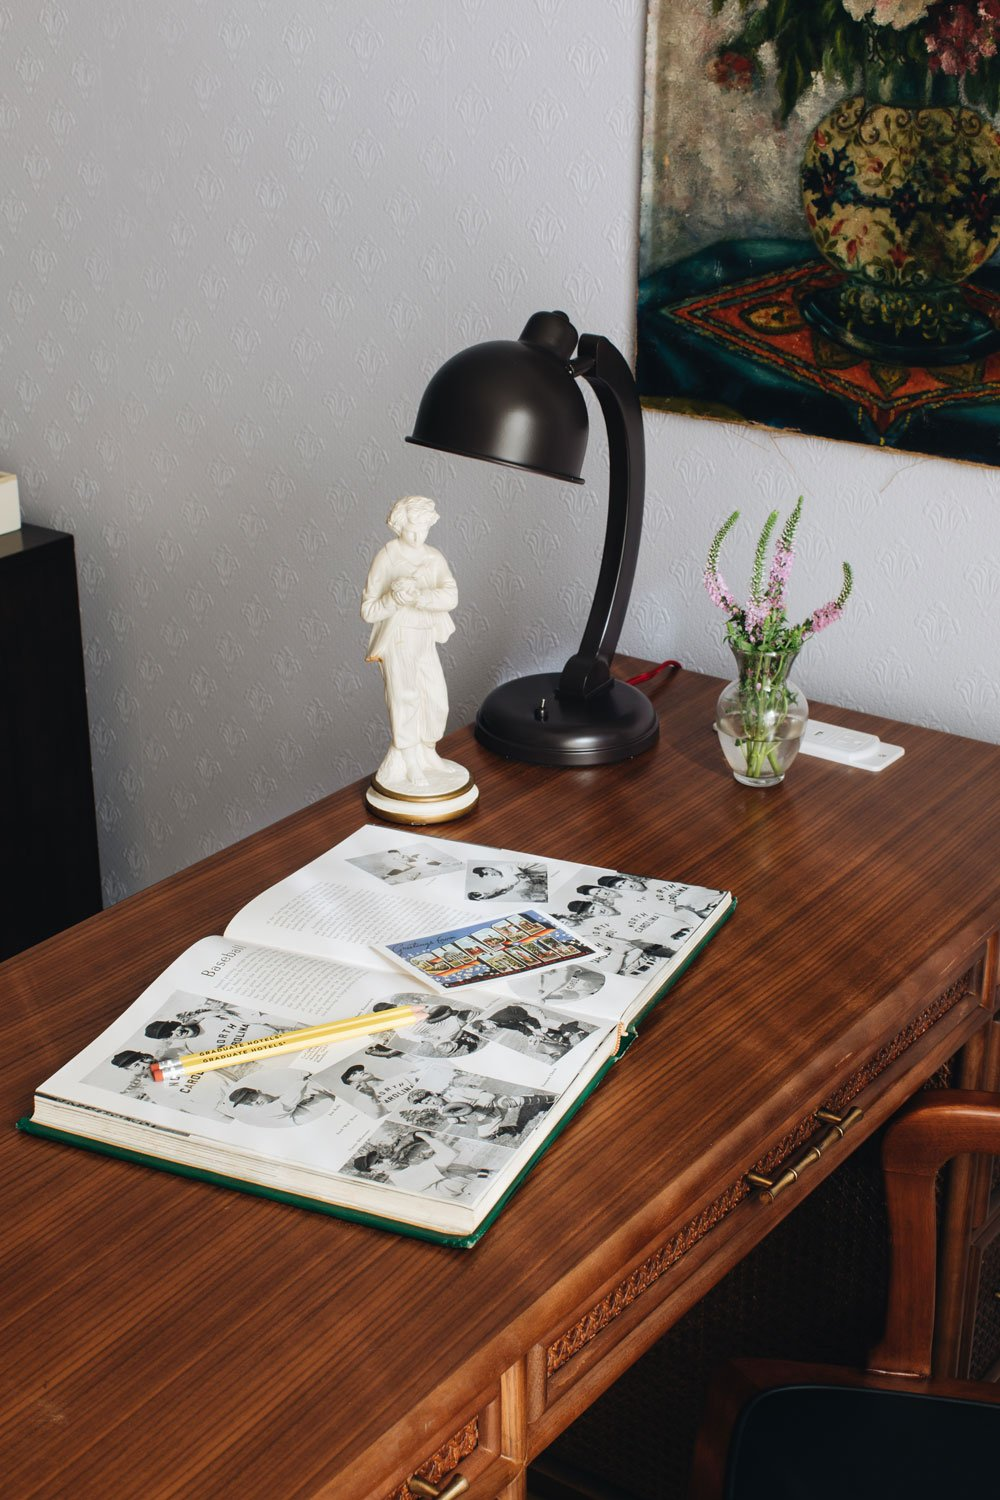 Desk with magazine and lamp